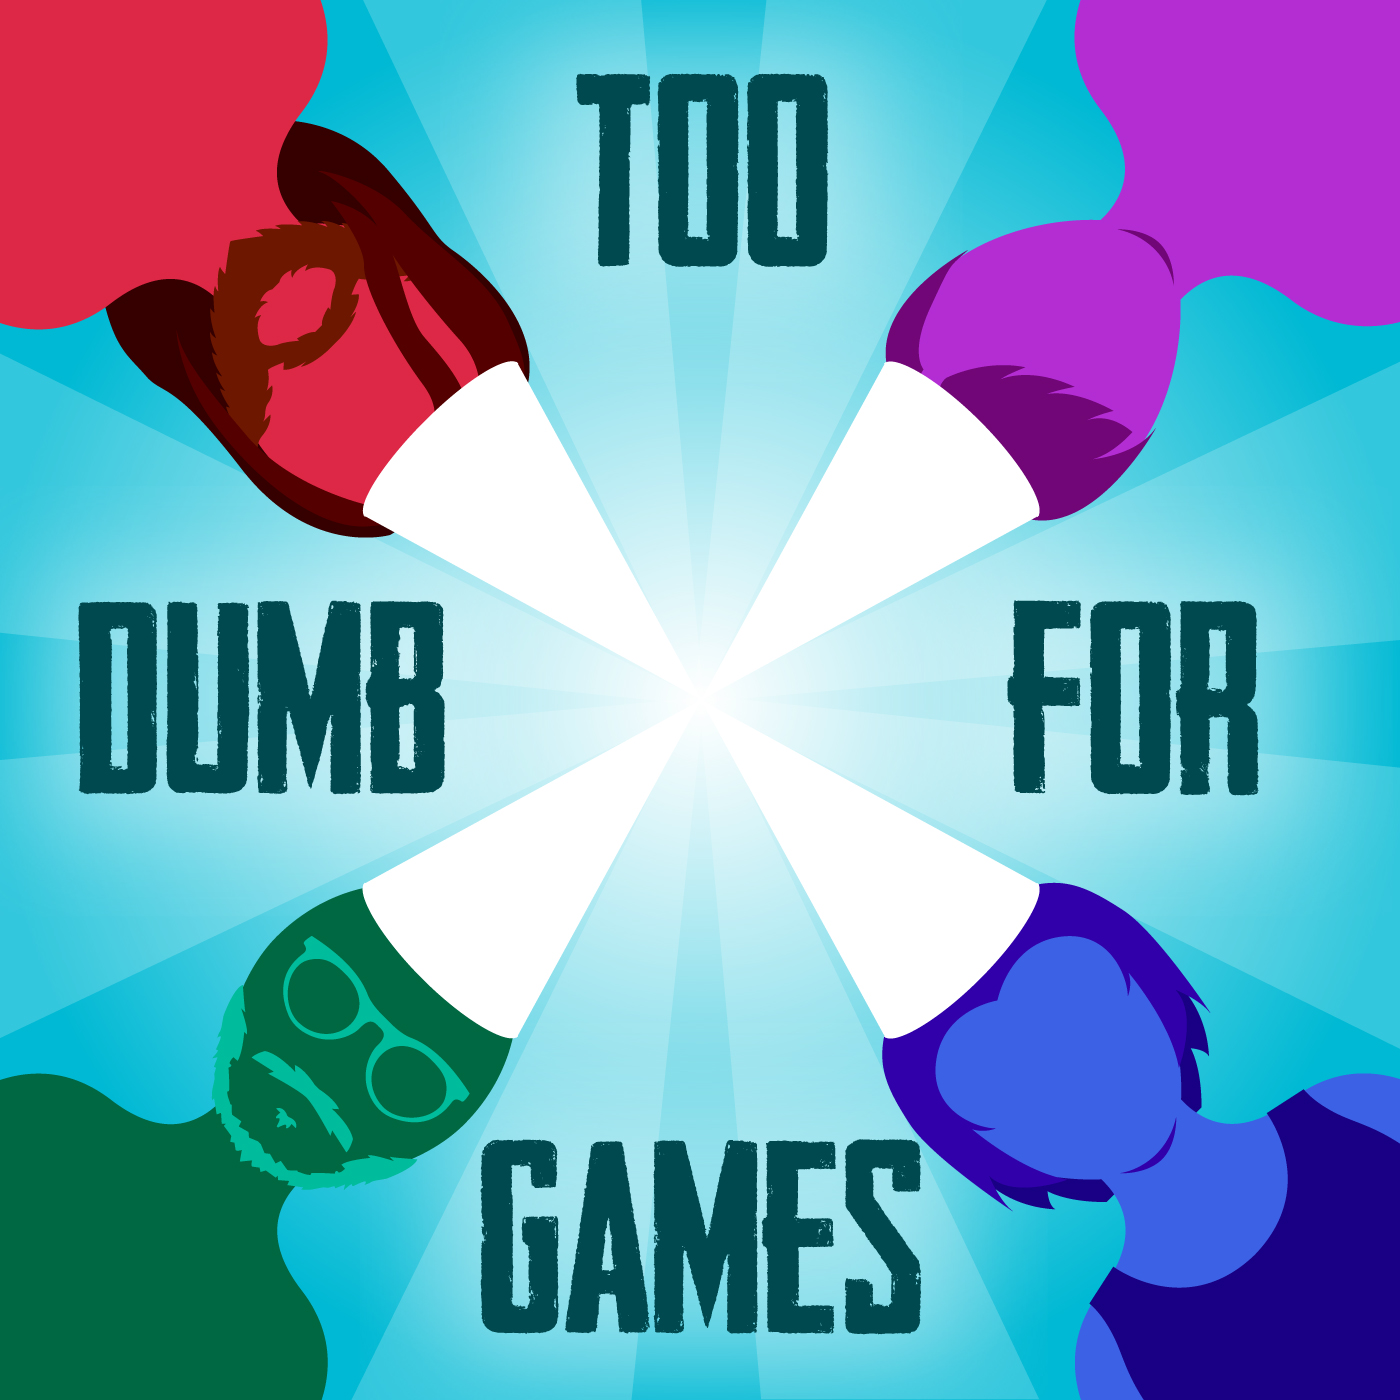 Too Dumb for Games logo